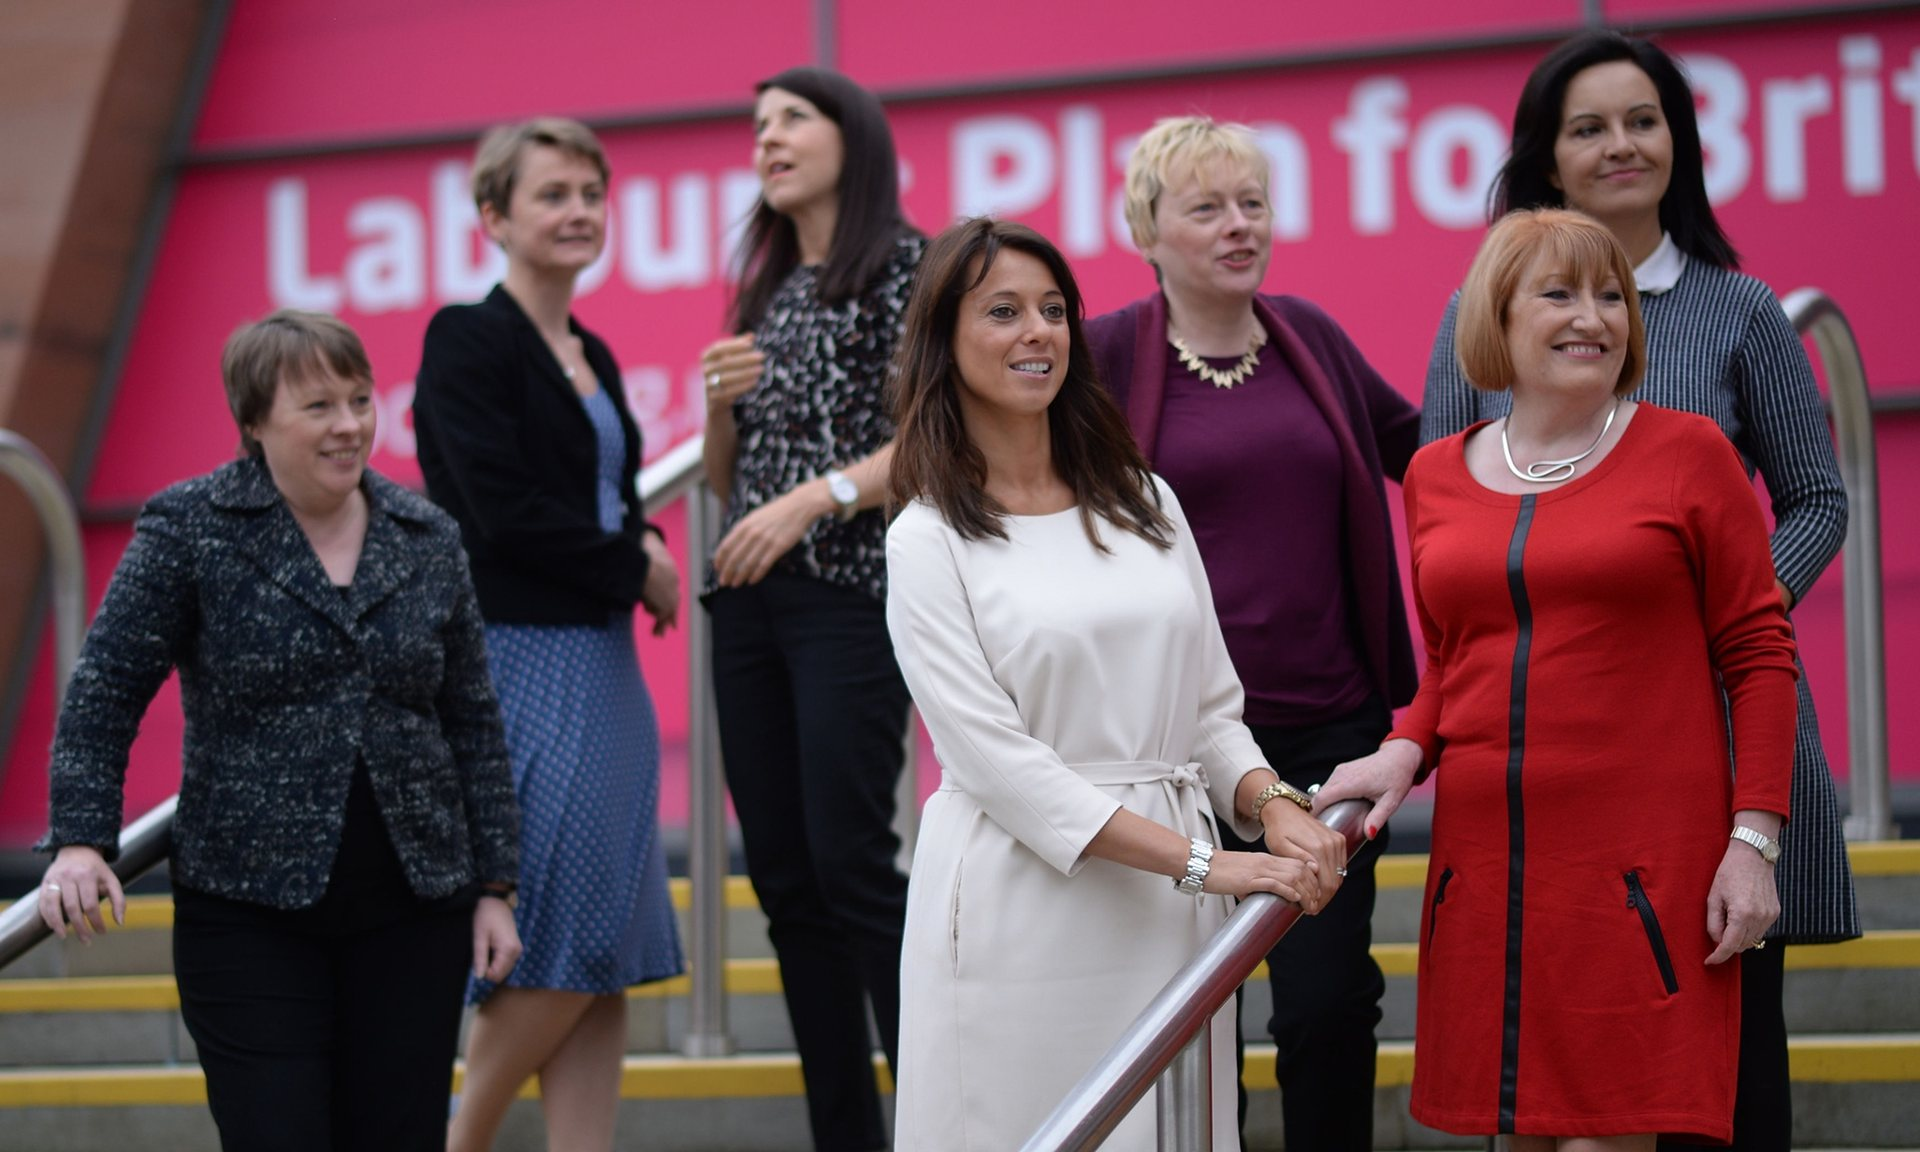 Labour's women's problem